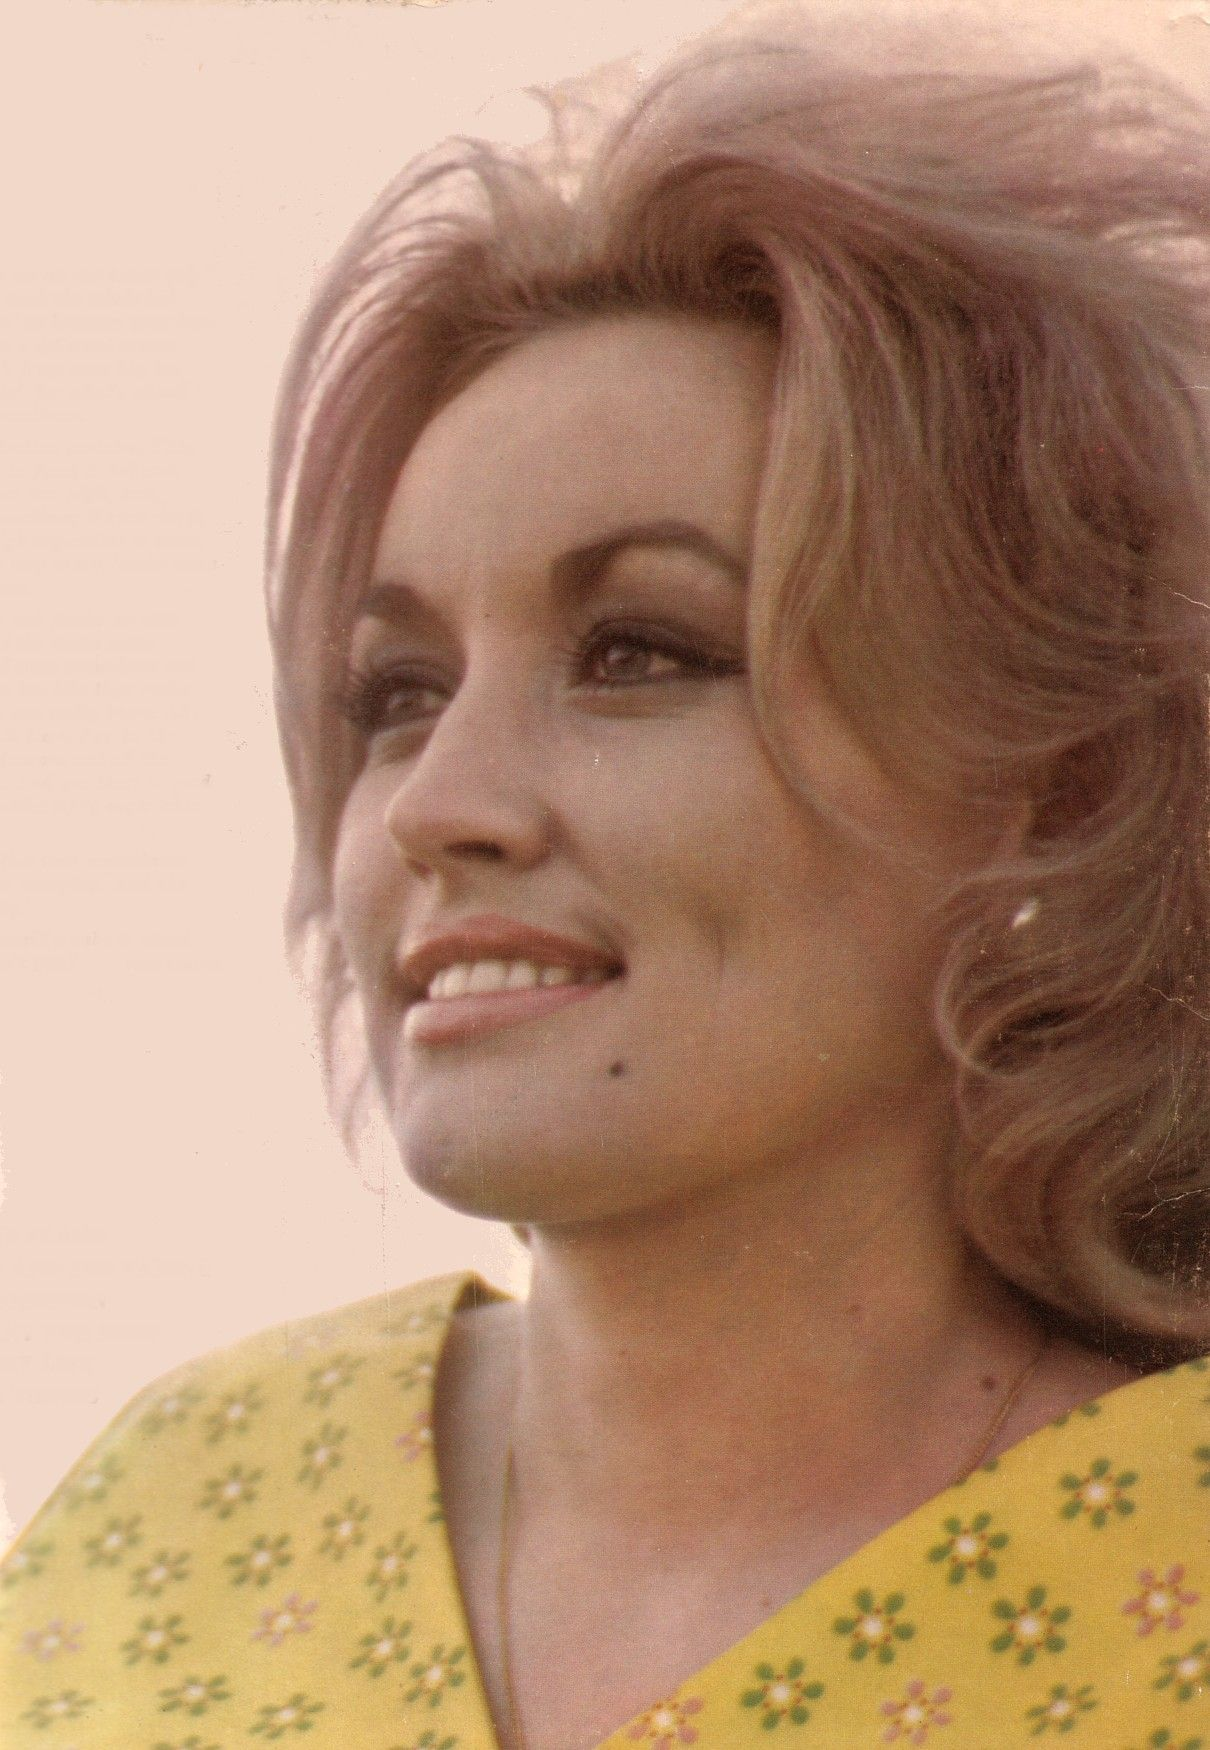 Dolly Parton-then.  Beautiful features.